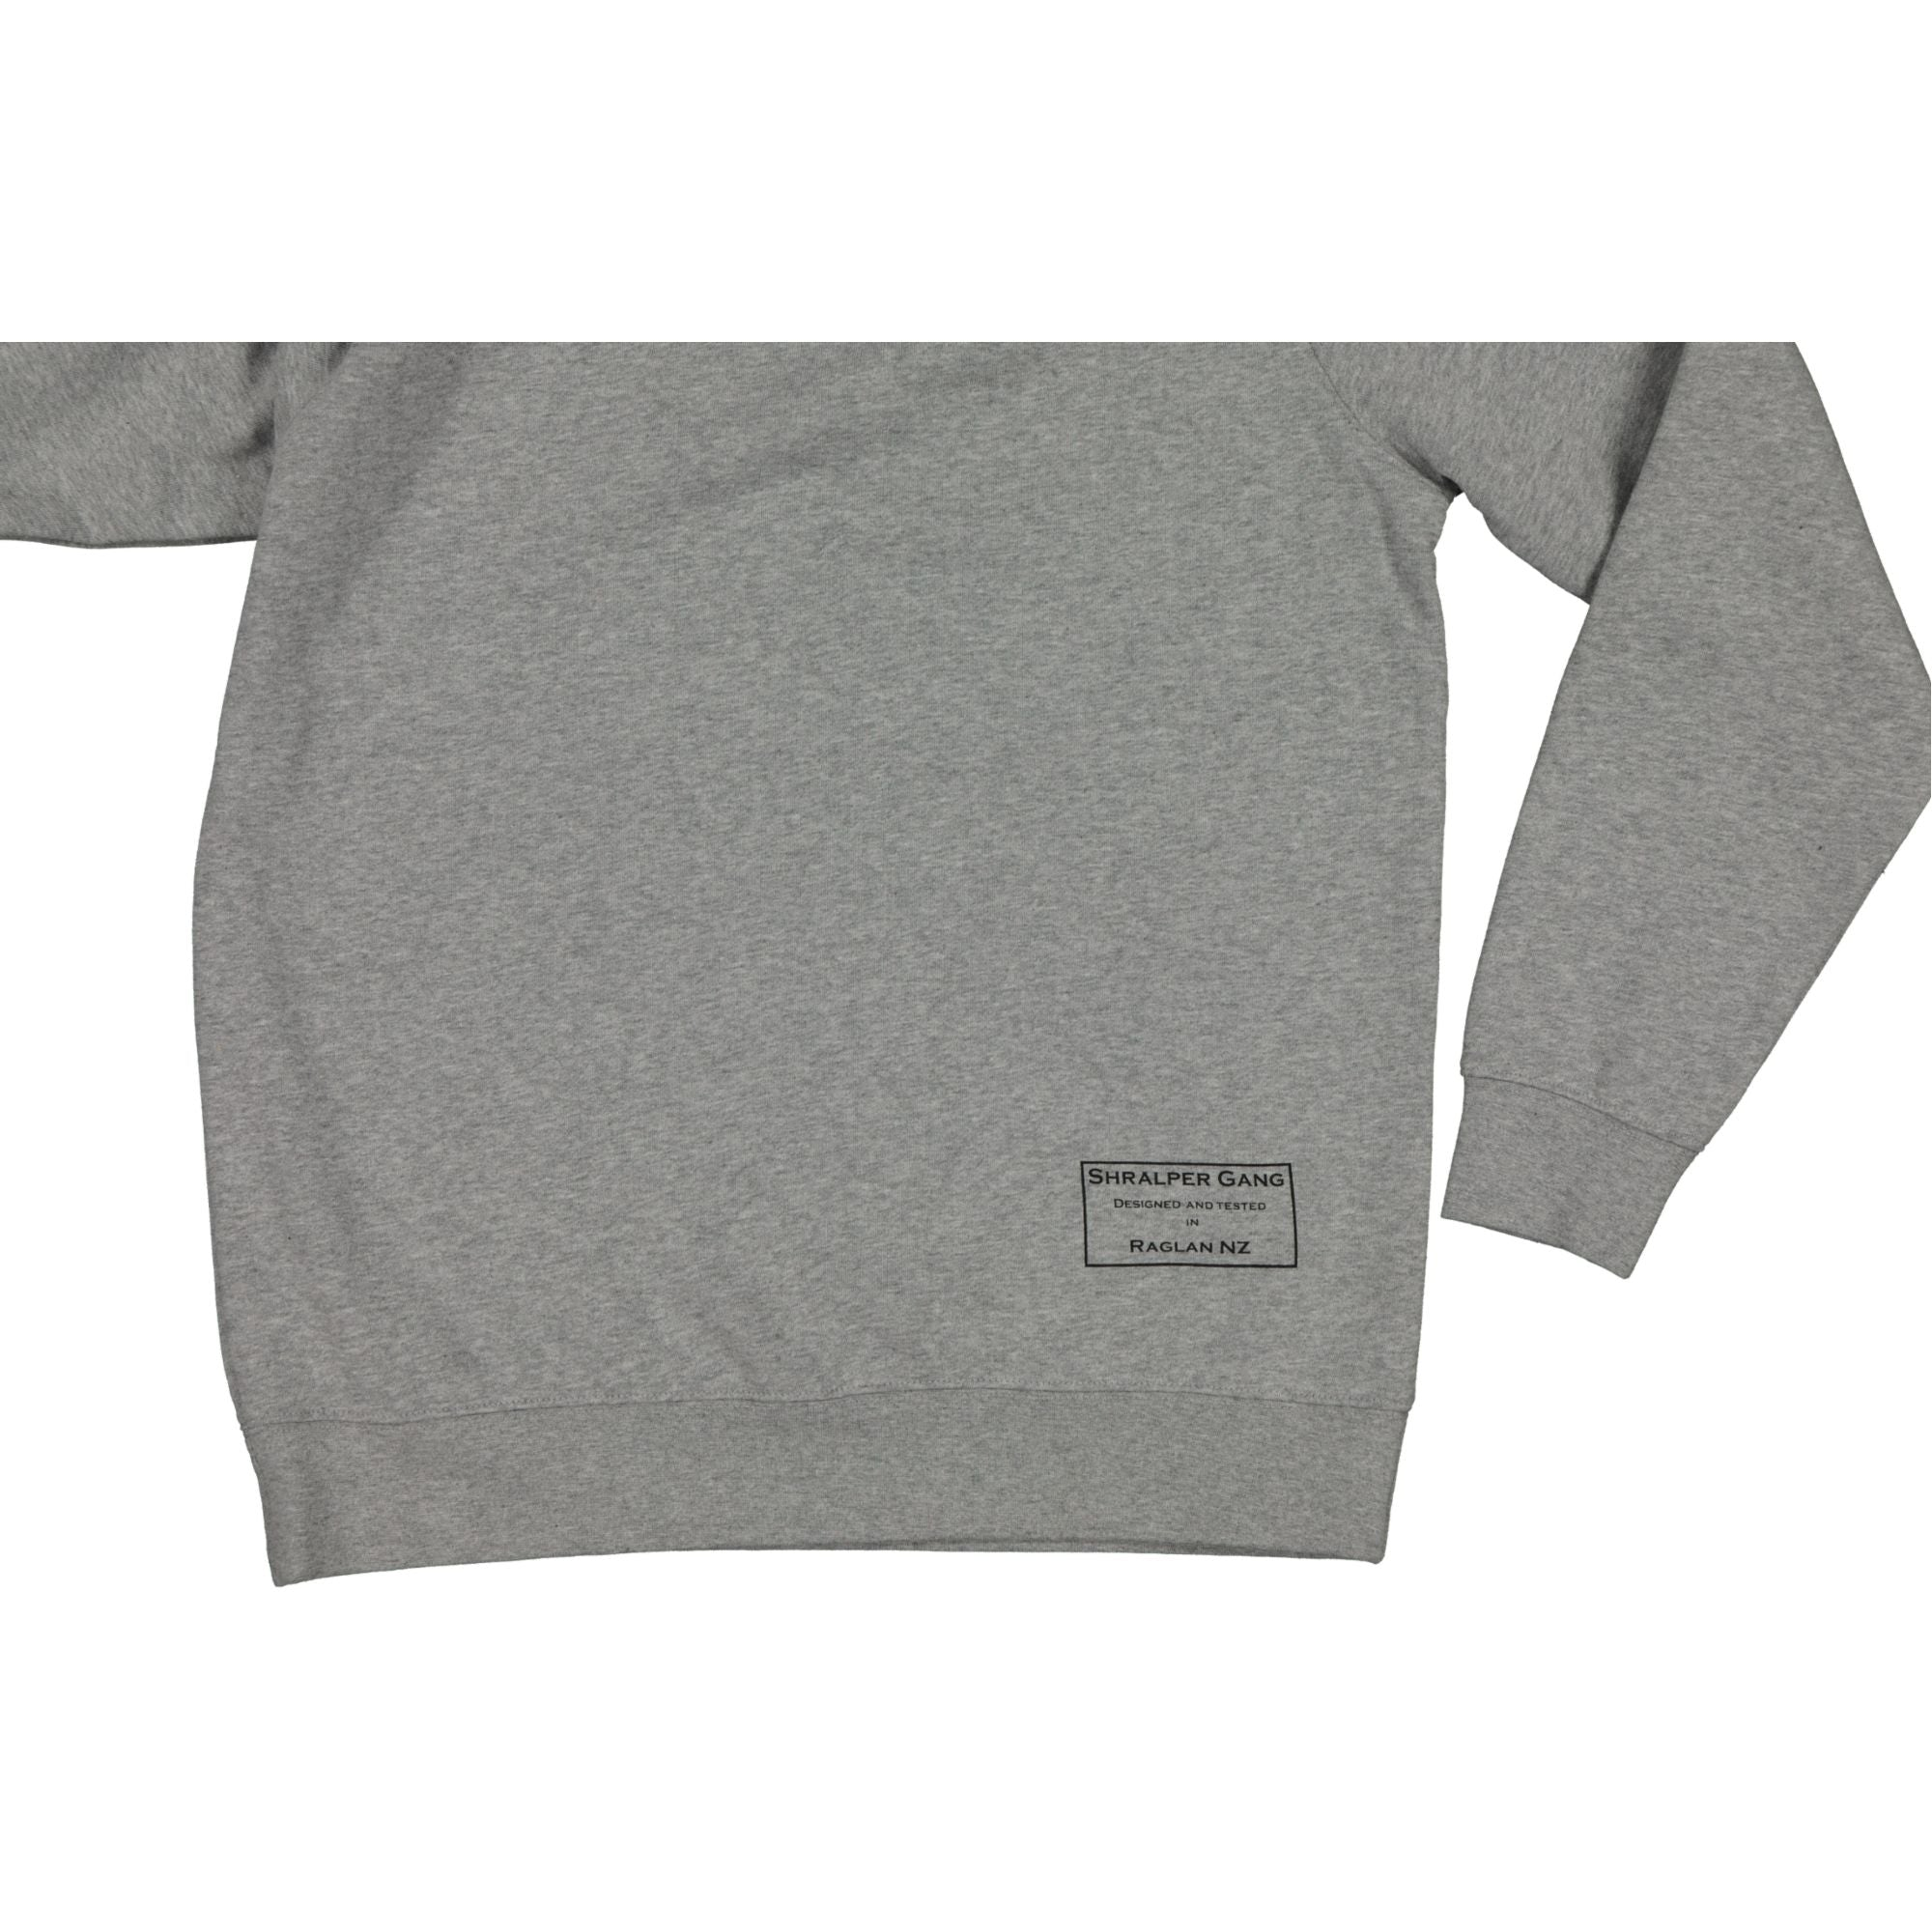 Shralper Gang Hood Grey